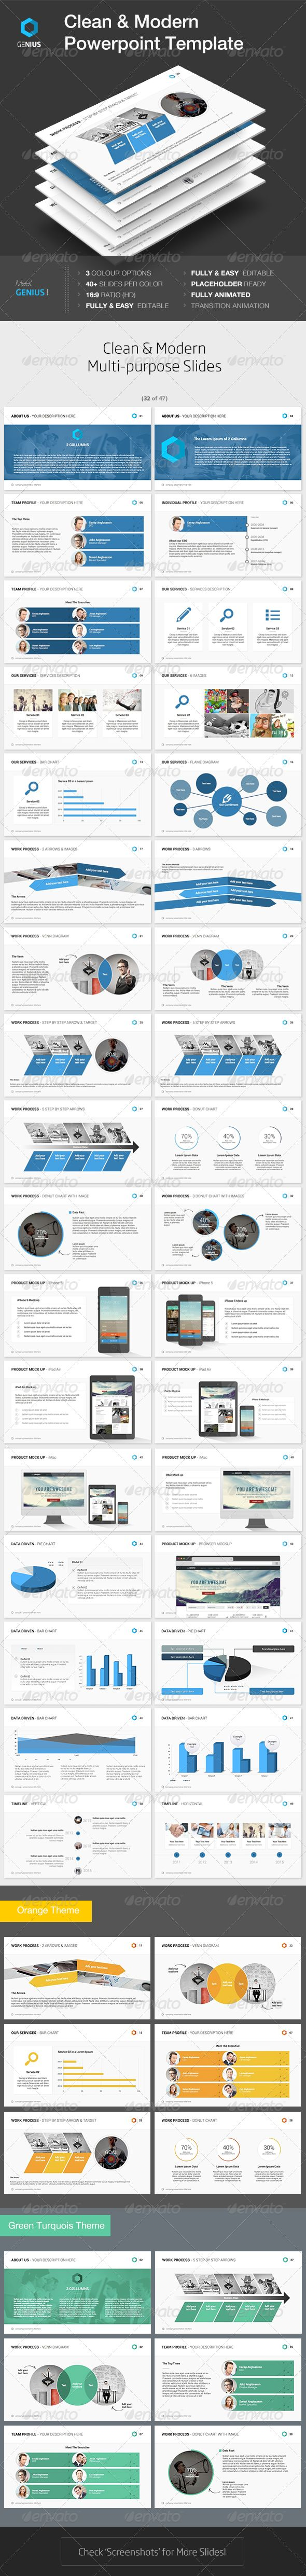 Genius   Powerpoint Template (Powerpoint Templates) #Powerpoint #Powerpoint_Template #Presentation